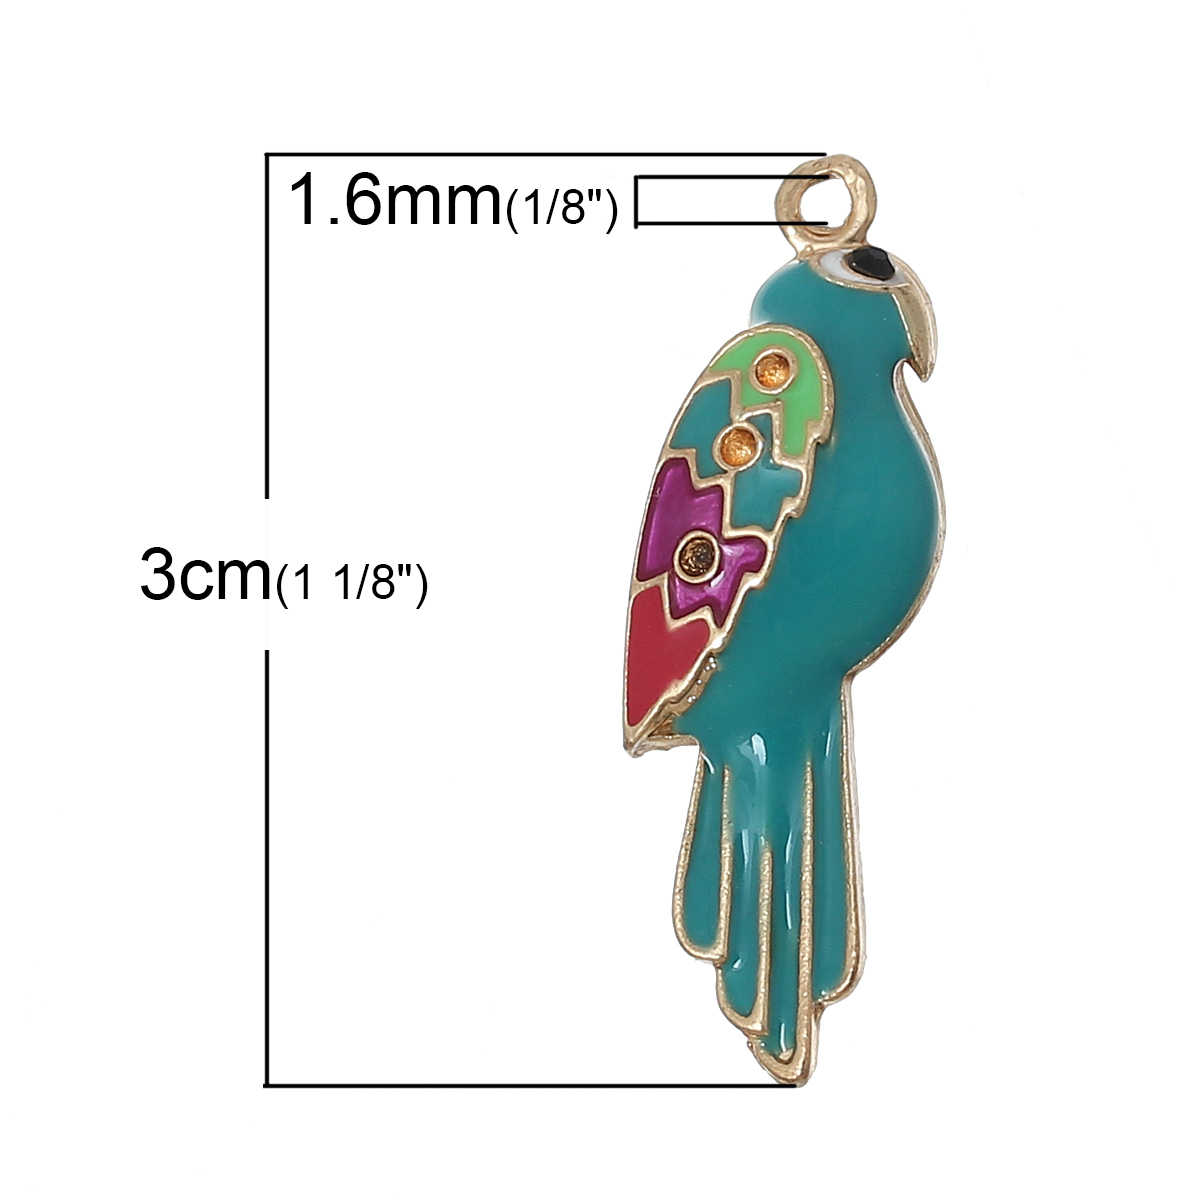 DoreenBeads Zinc alloy Charm Pendants Parrot Gold color Multicolor(Hold ss4 Rhinestone)Black Rhinestone Enamel 30mmx10mm,1 PC